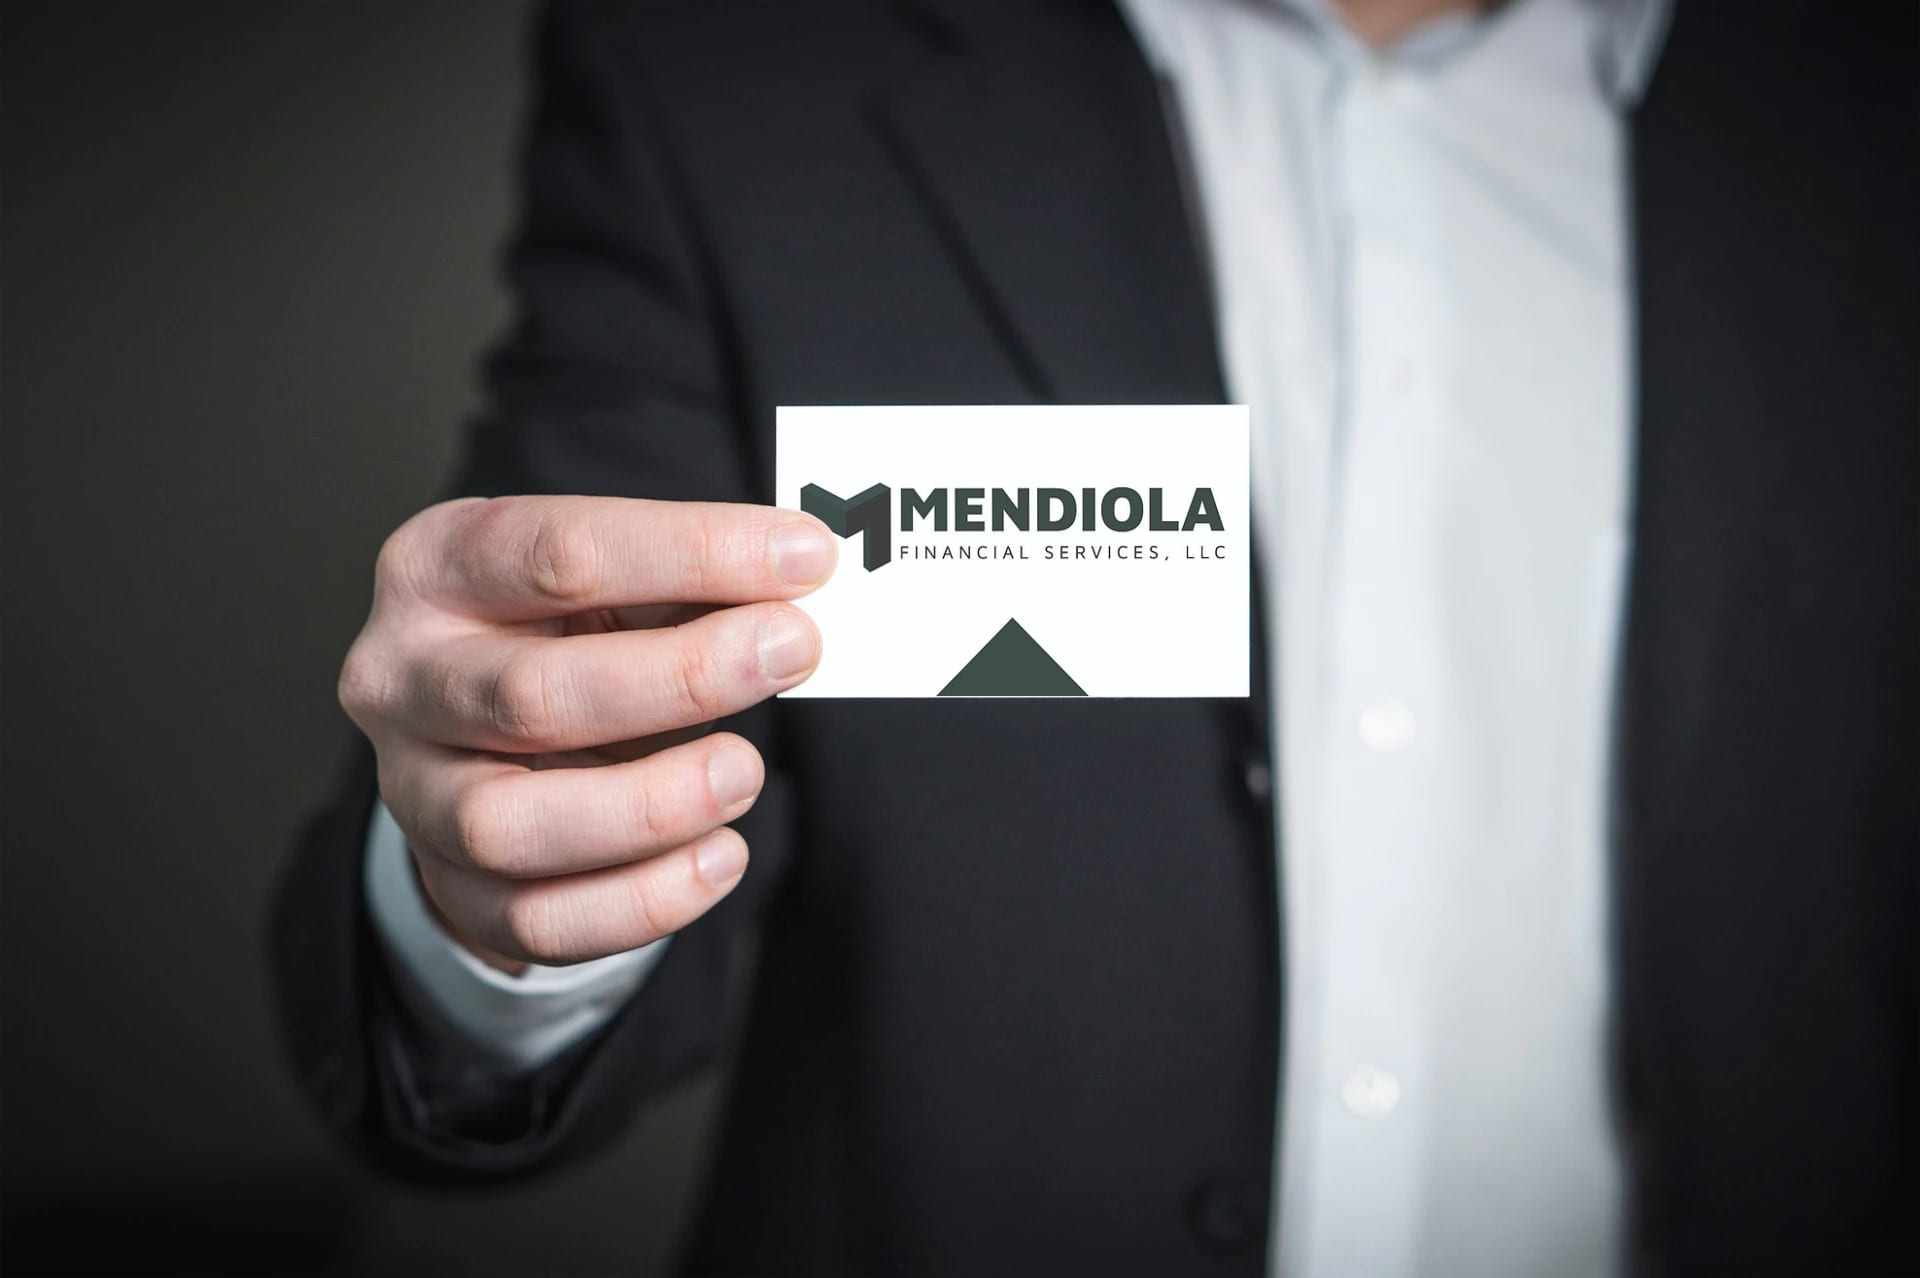 Mendiola Business Card Mockup